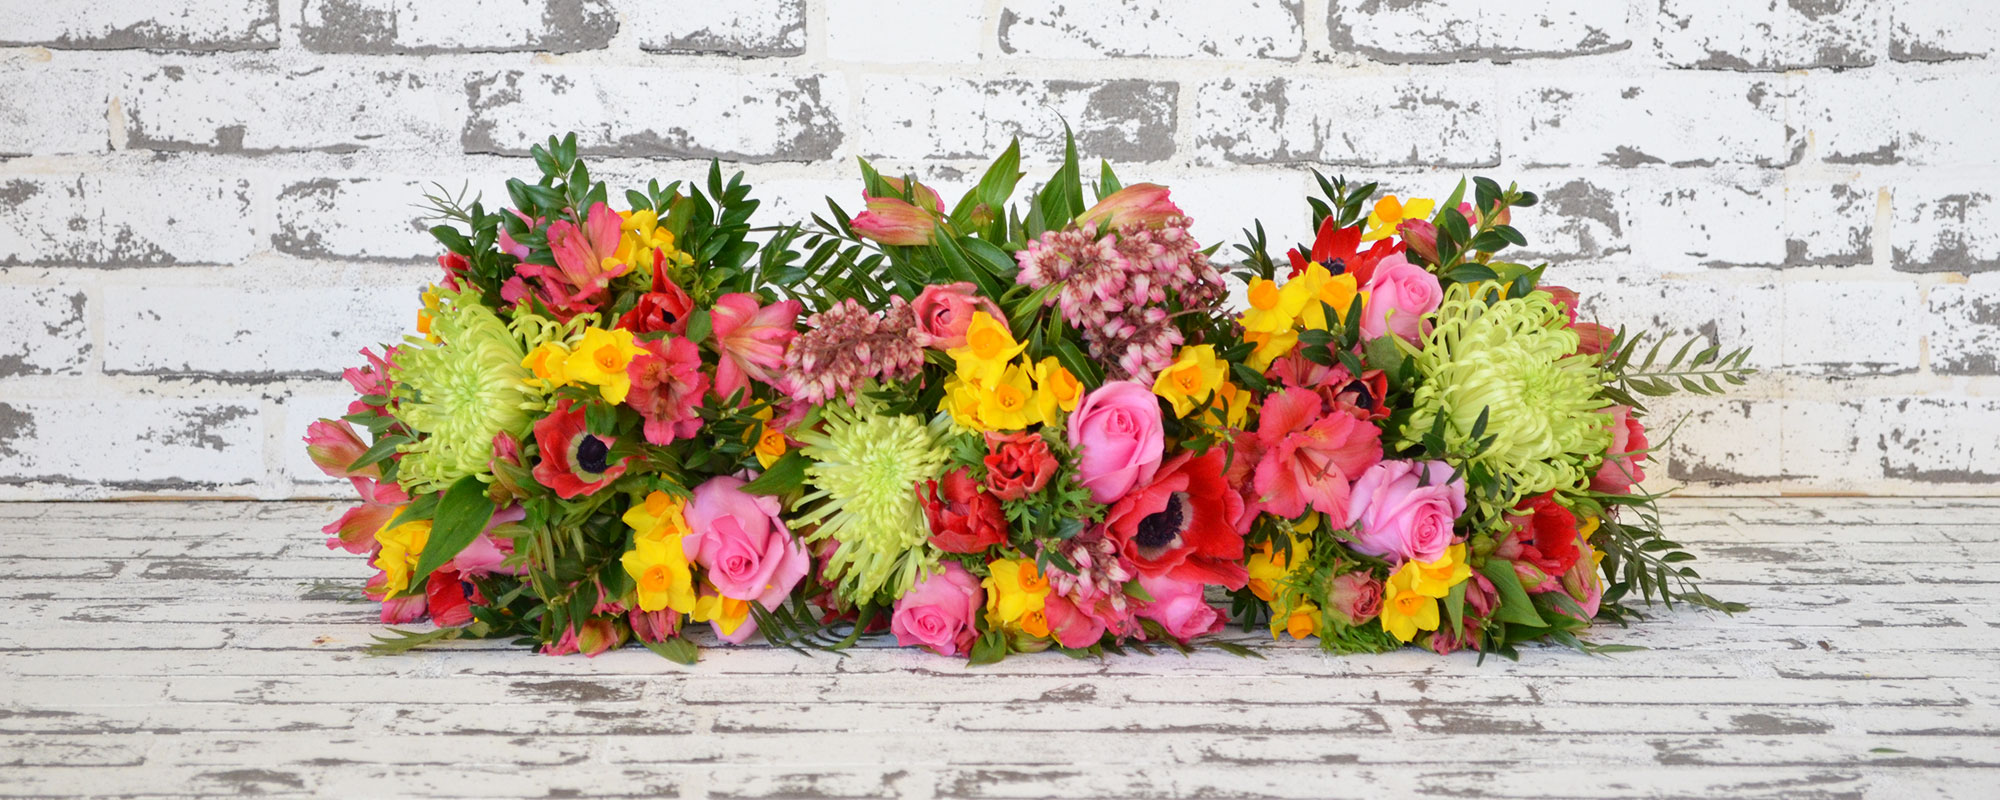 Scentsational Flowers Croydon - Buy Flower Posies Croydon